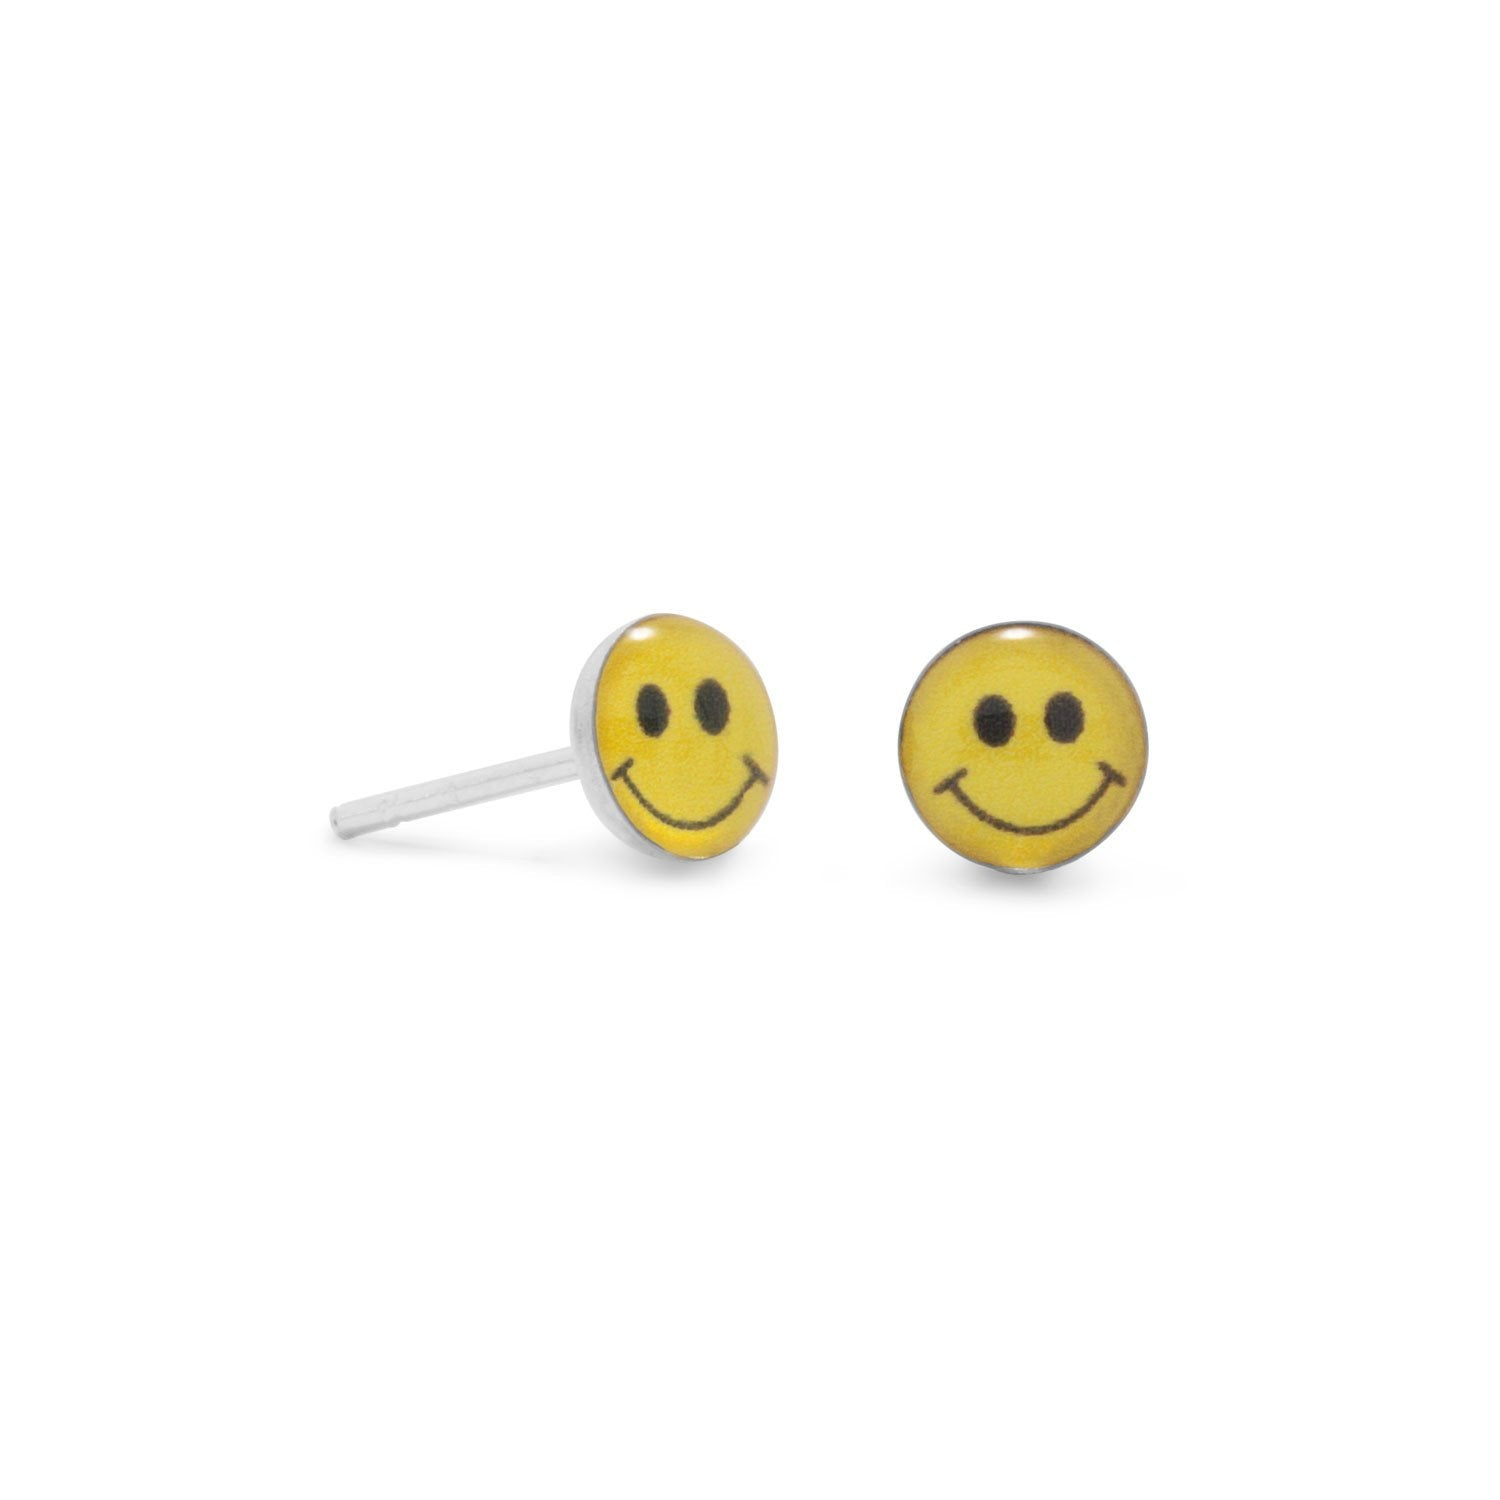 Smiley Face Earrings - the-southern-magnolia-too